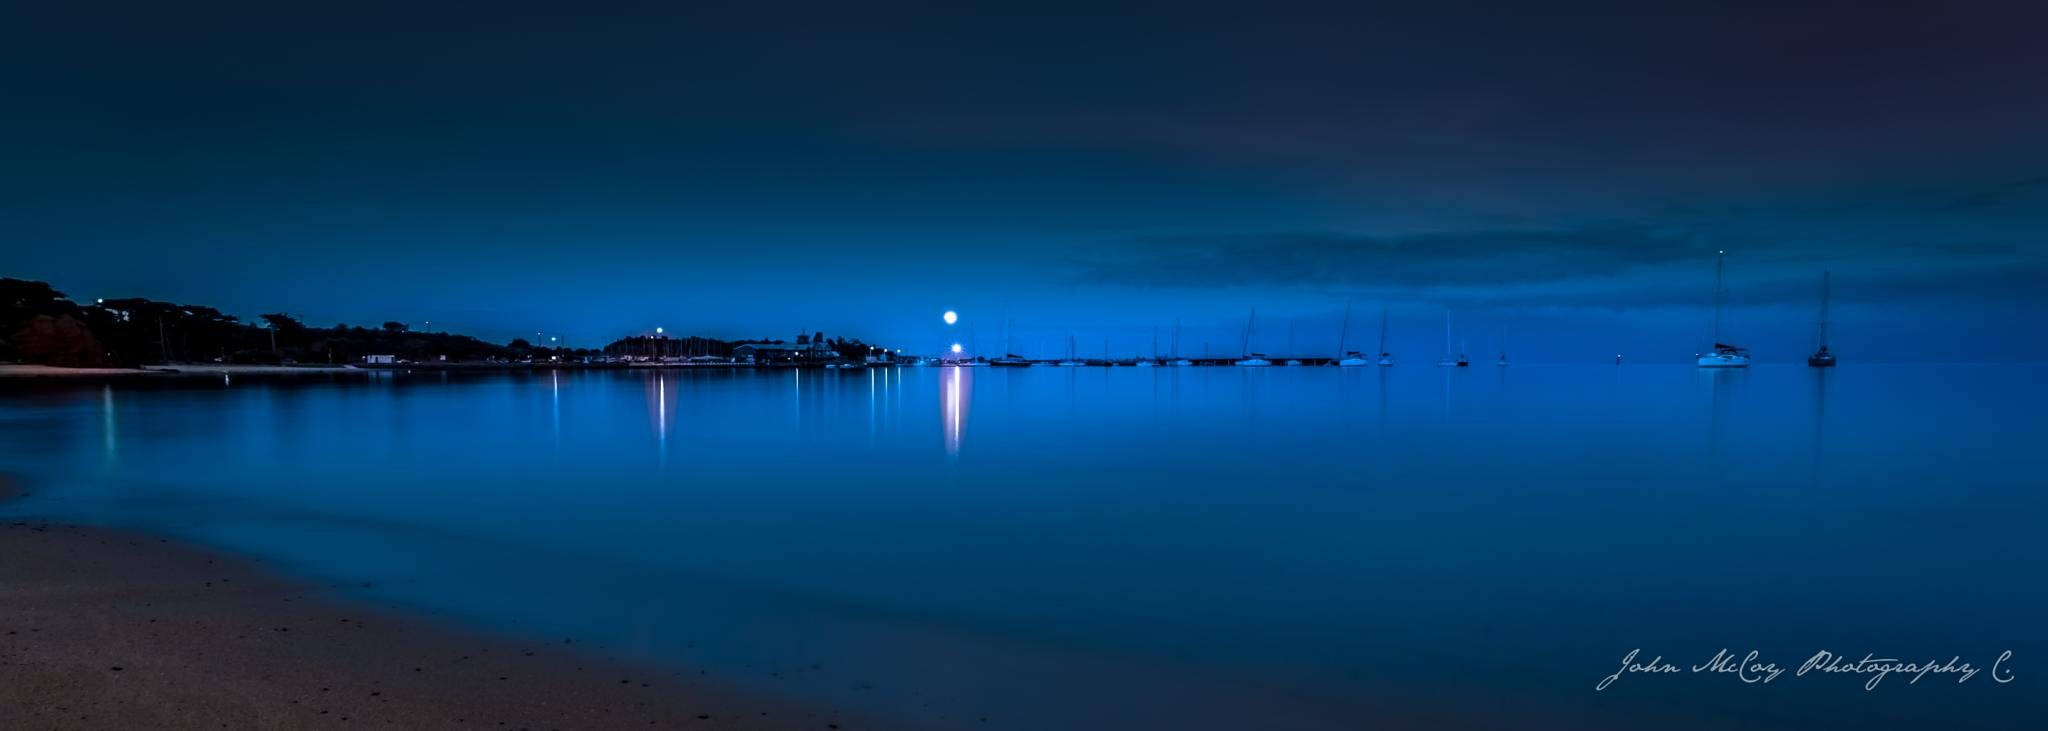 Moon set at sunset by johnmccoyphotography